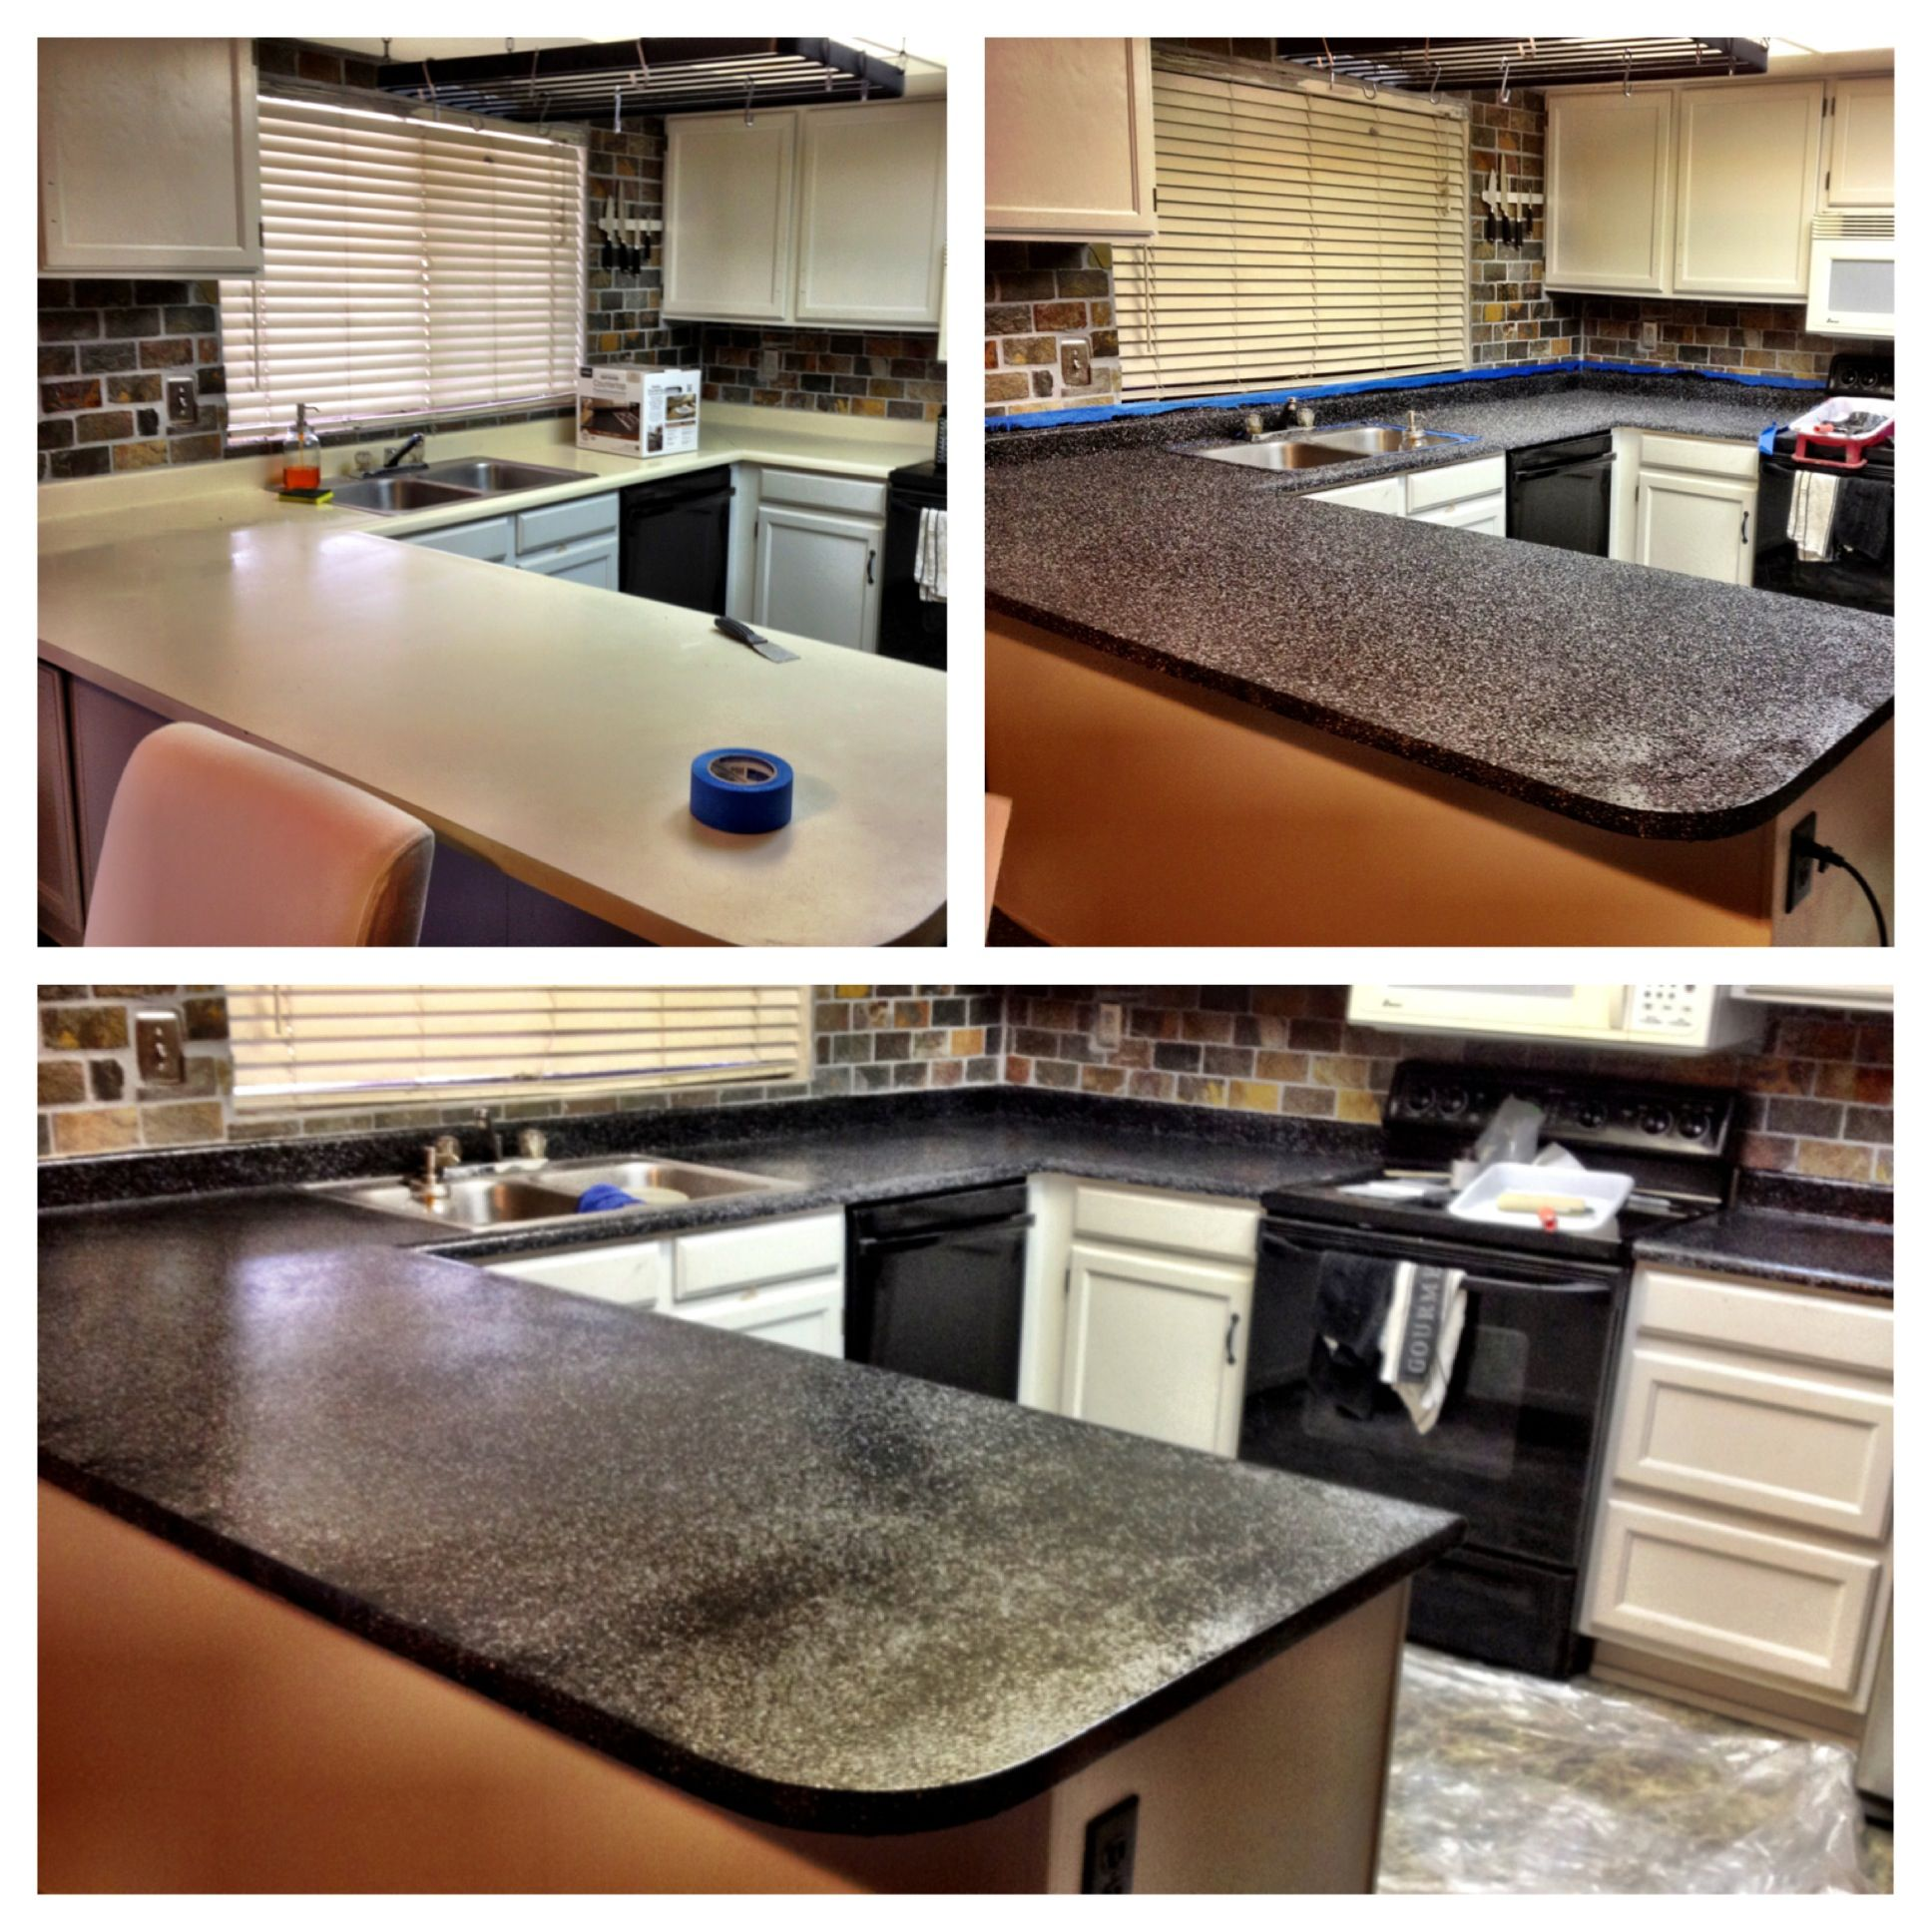 DIY kitchen counter make over that I LOVE Rustoileum kit from home depot =cheap easy and amazing results Painting counter tops dark with white cabinets